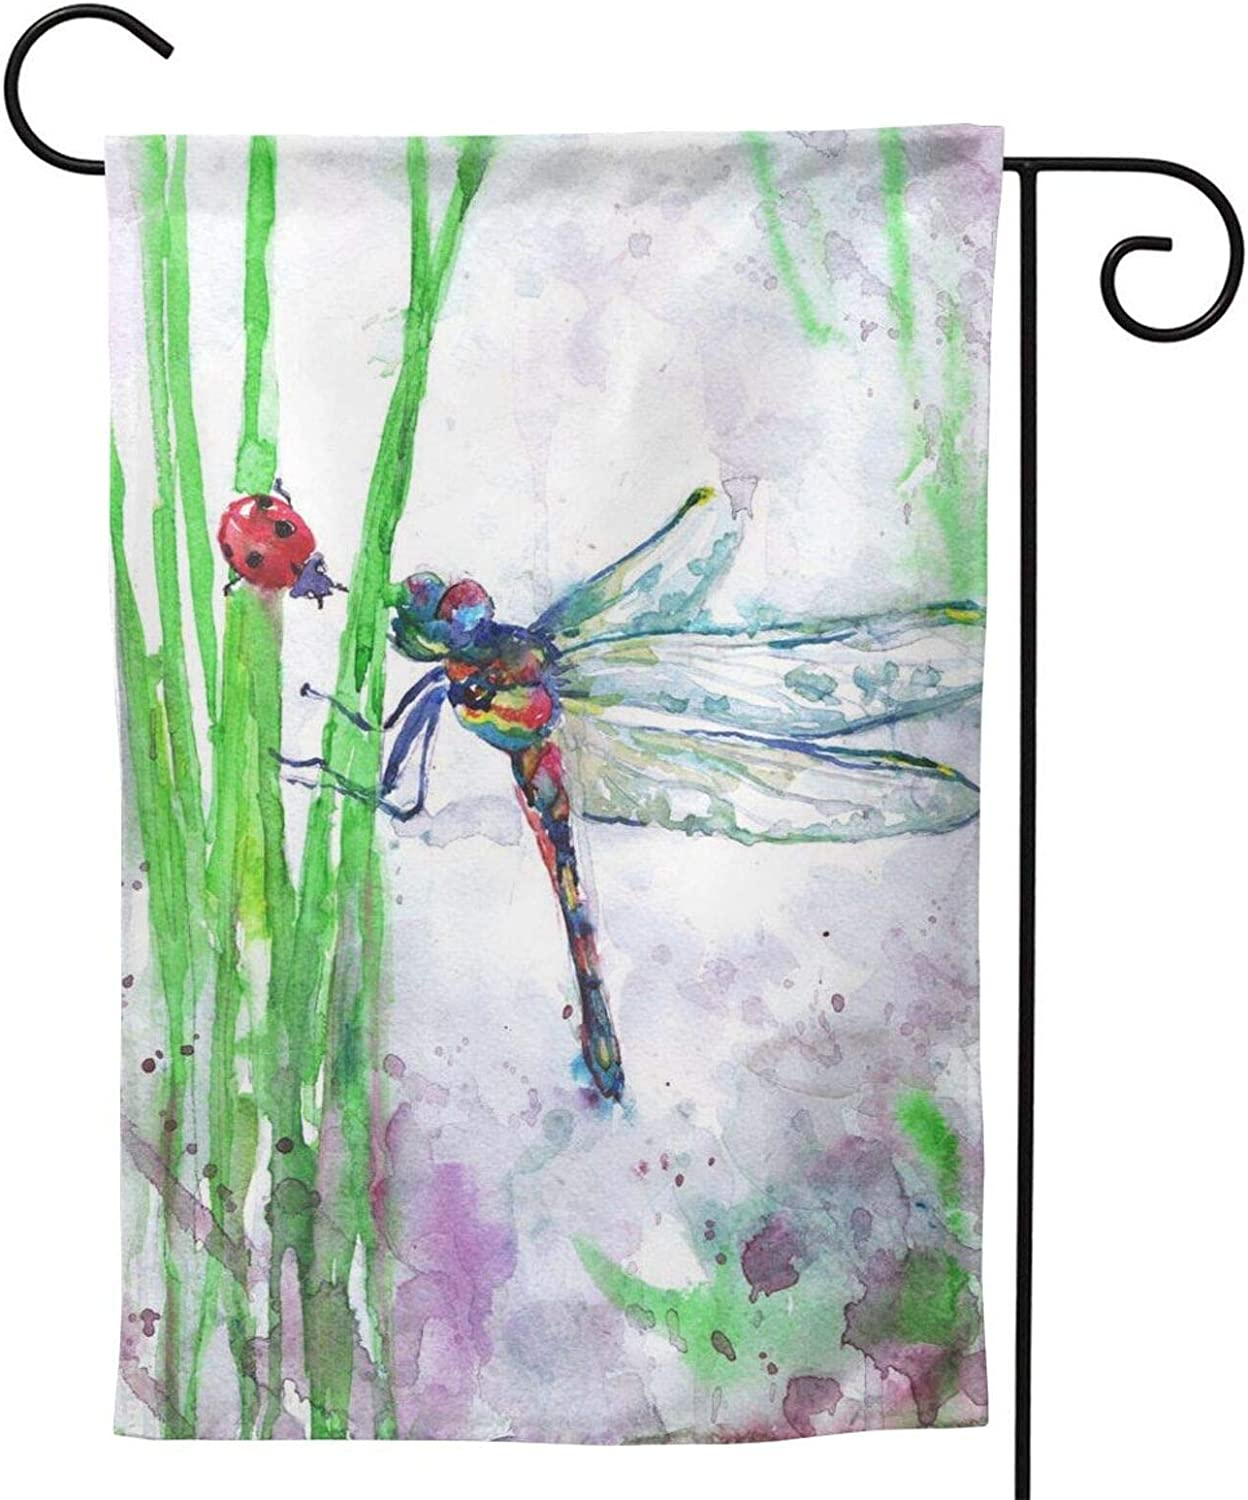 QNOQME Watercolor Dragonfly and Ladybug Garden Flags Vertical Double Sided Yard Banner for Outdoor Decorations(Multi-Code)